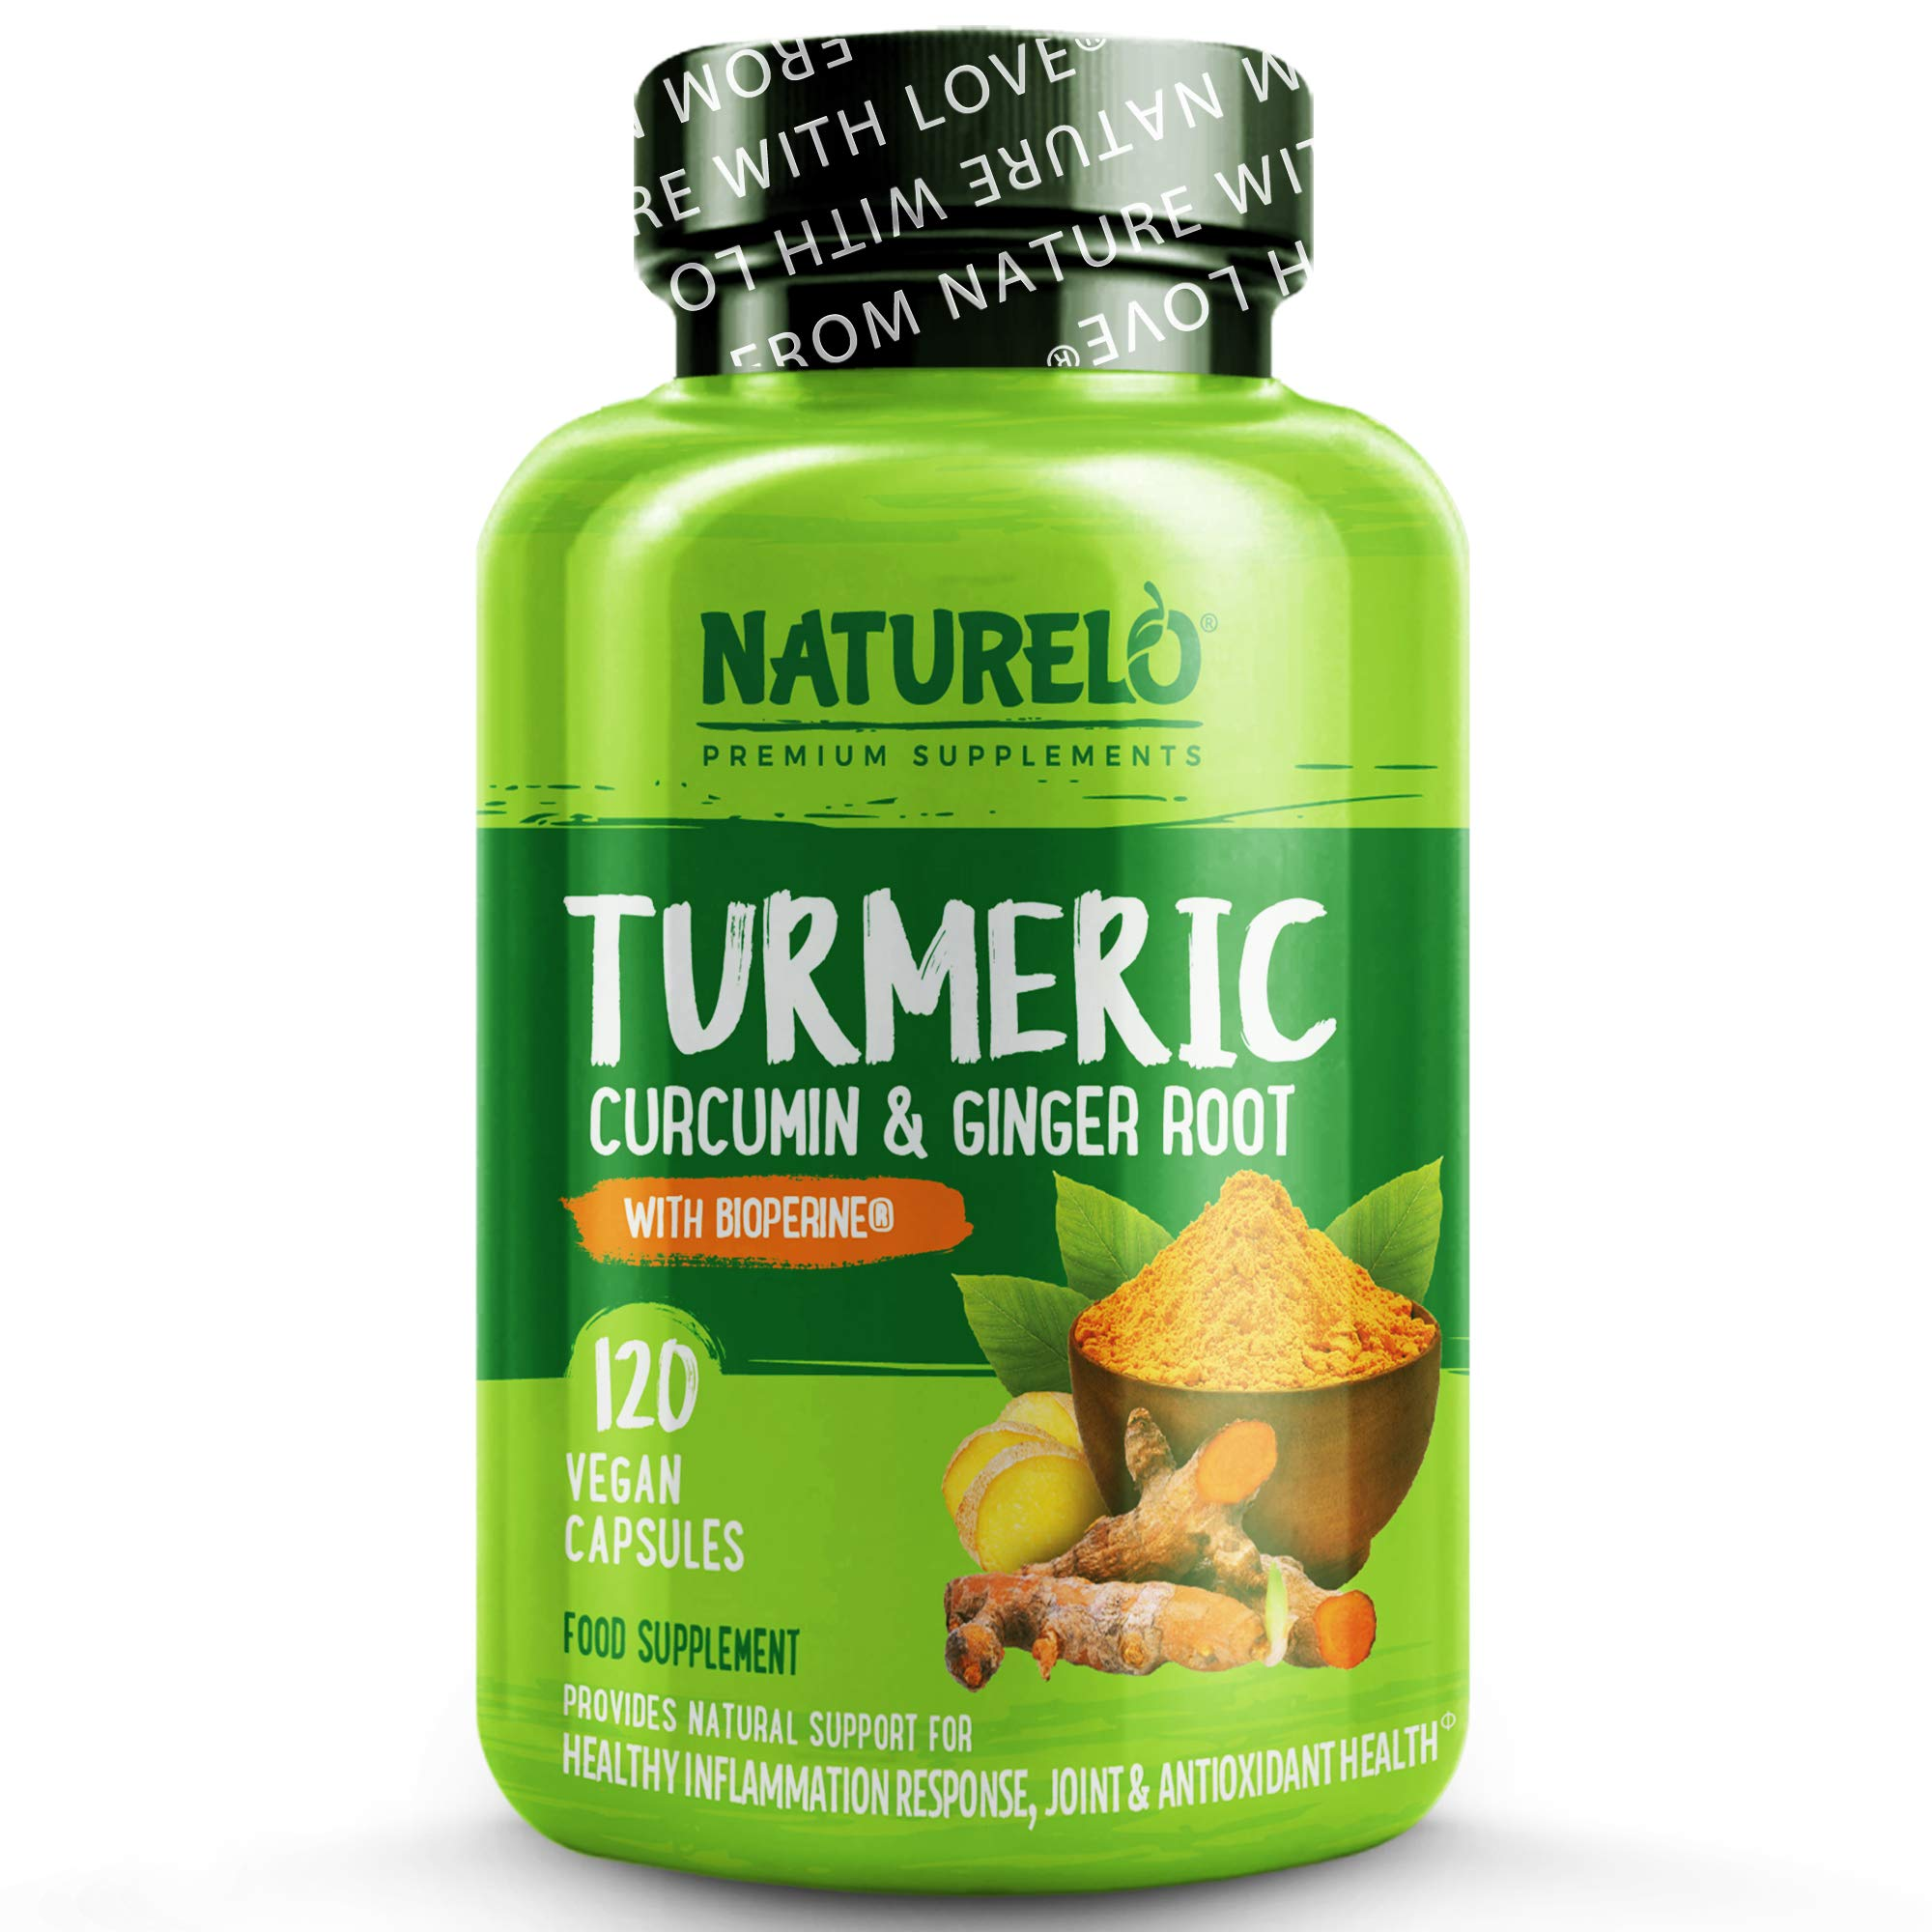 NATURELO Turmeric (Curcumin) - with Black Pepper for Better Absorption & Ginger, Boswellia & MSM - Powerful Complete Formula For Optimal Physical Wellness - 120 Vegan Capsules | 4 Month Supply